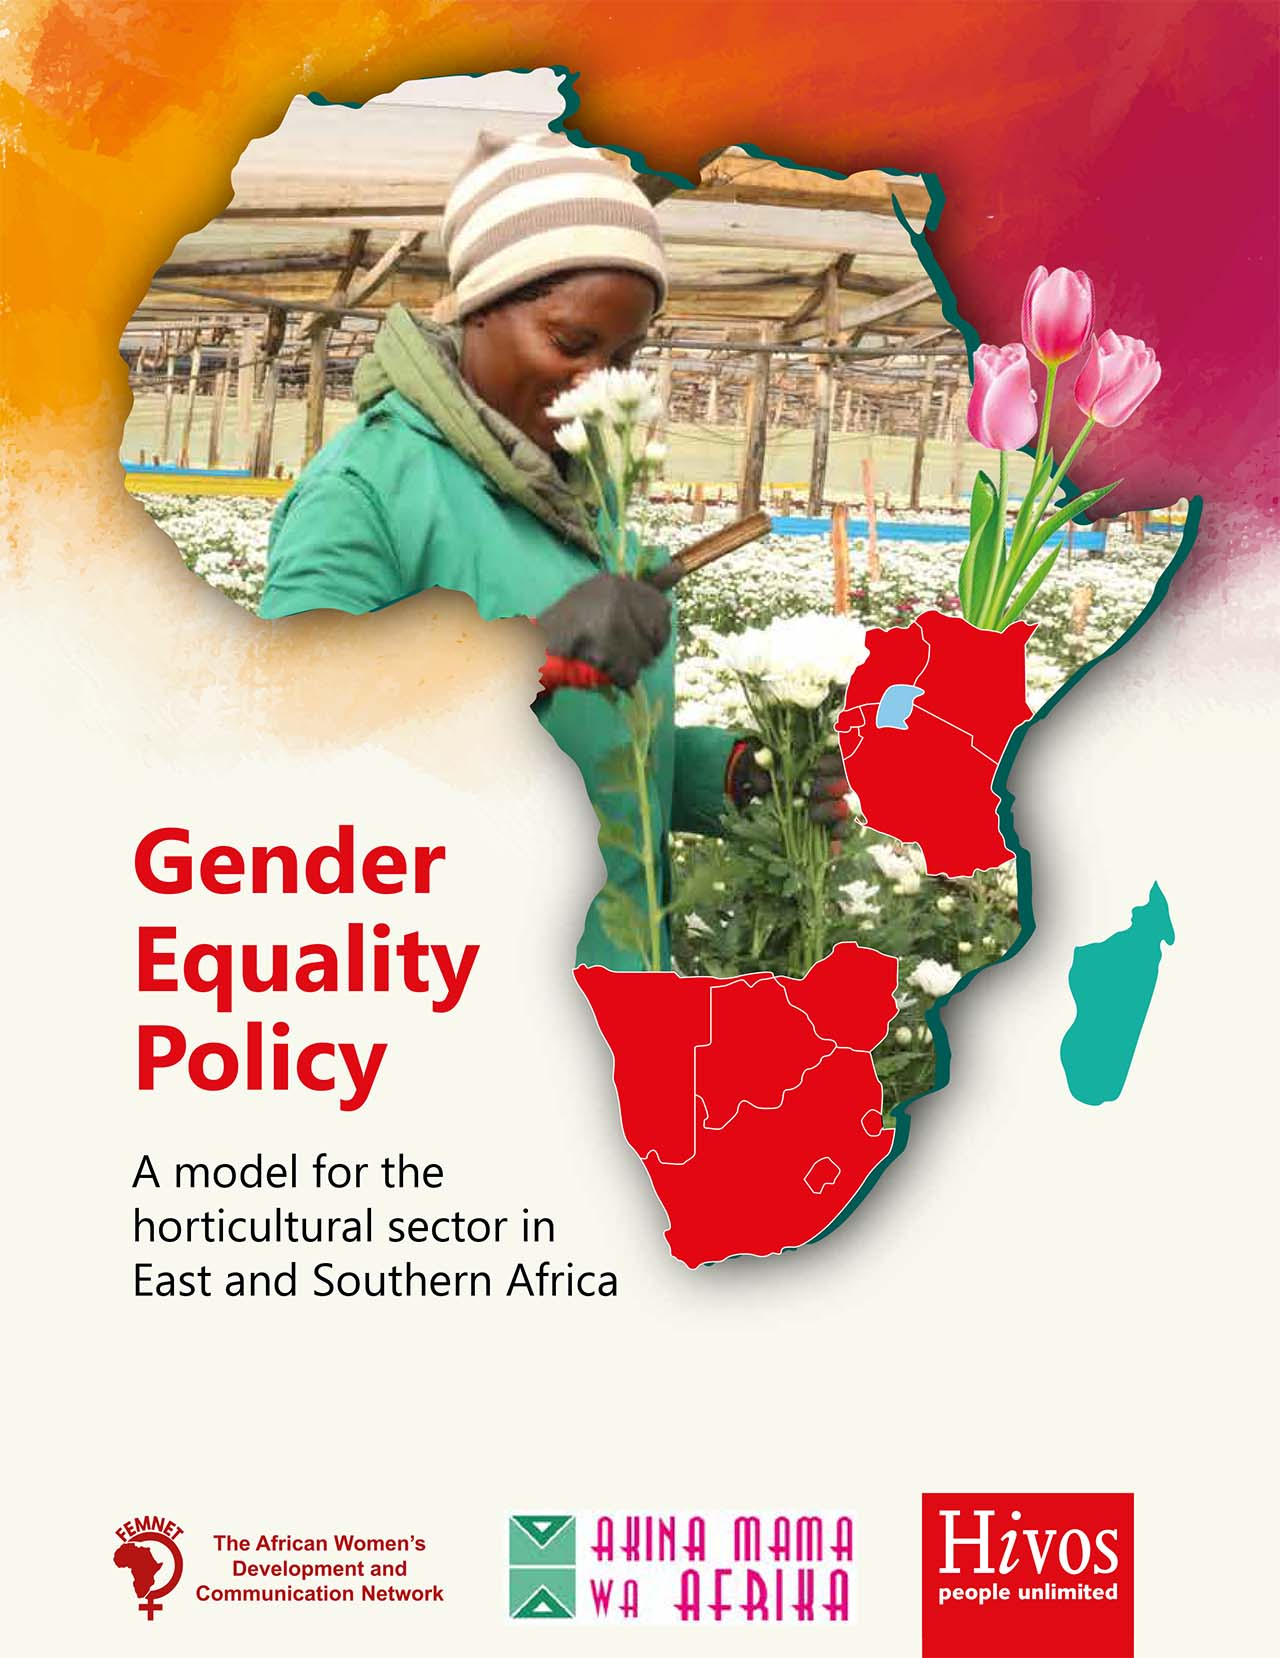 Gender Equality Policy: A Model for the Horticultural Sector in East and Southern Africa